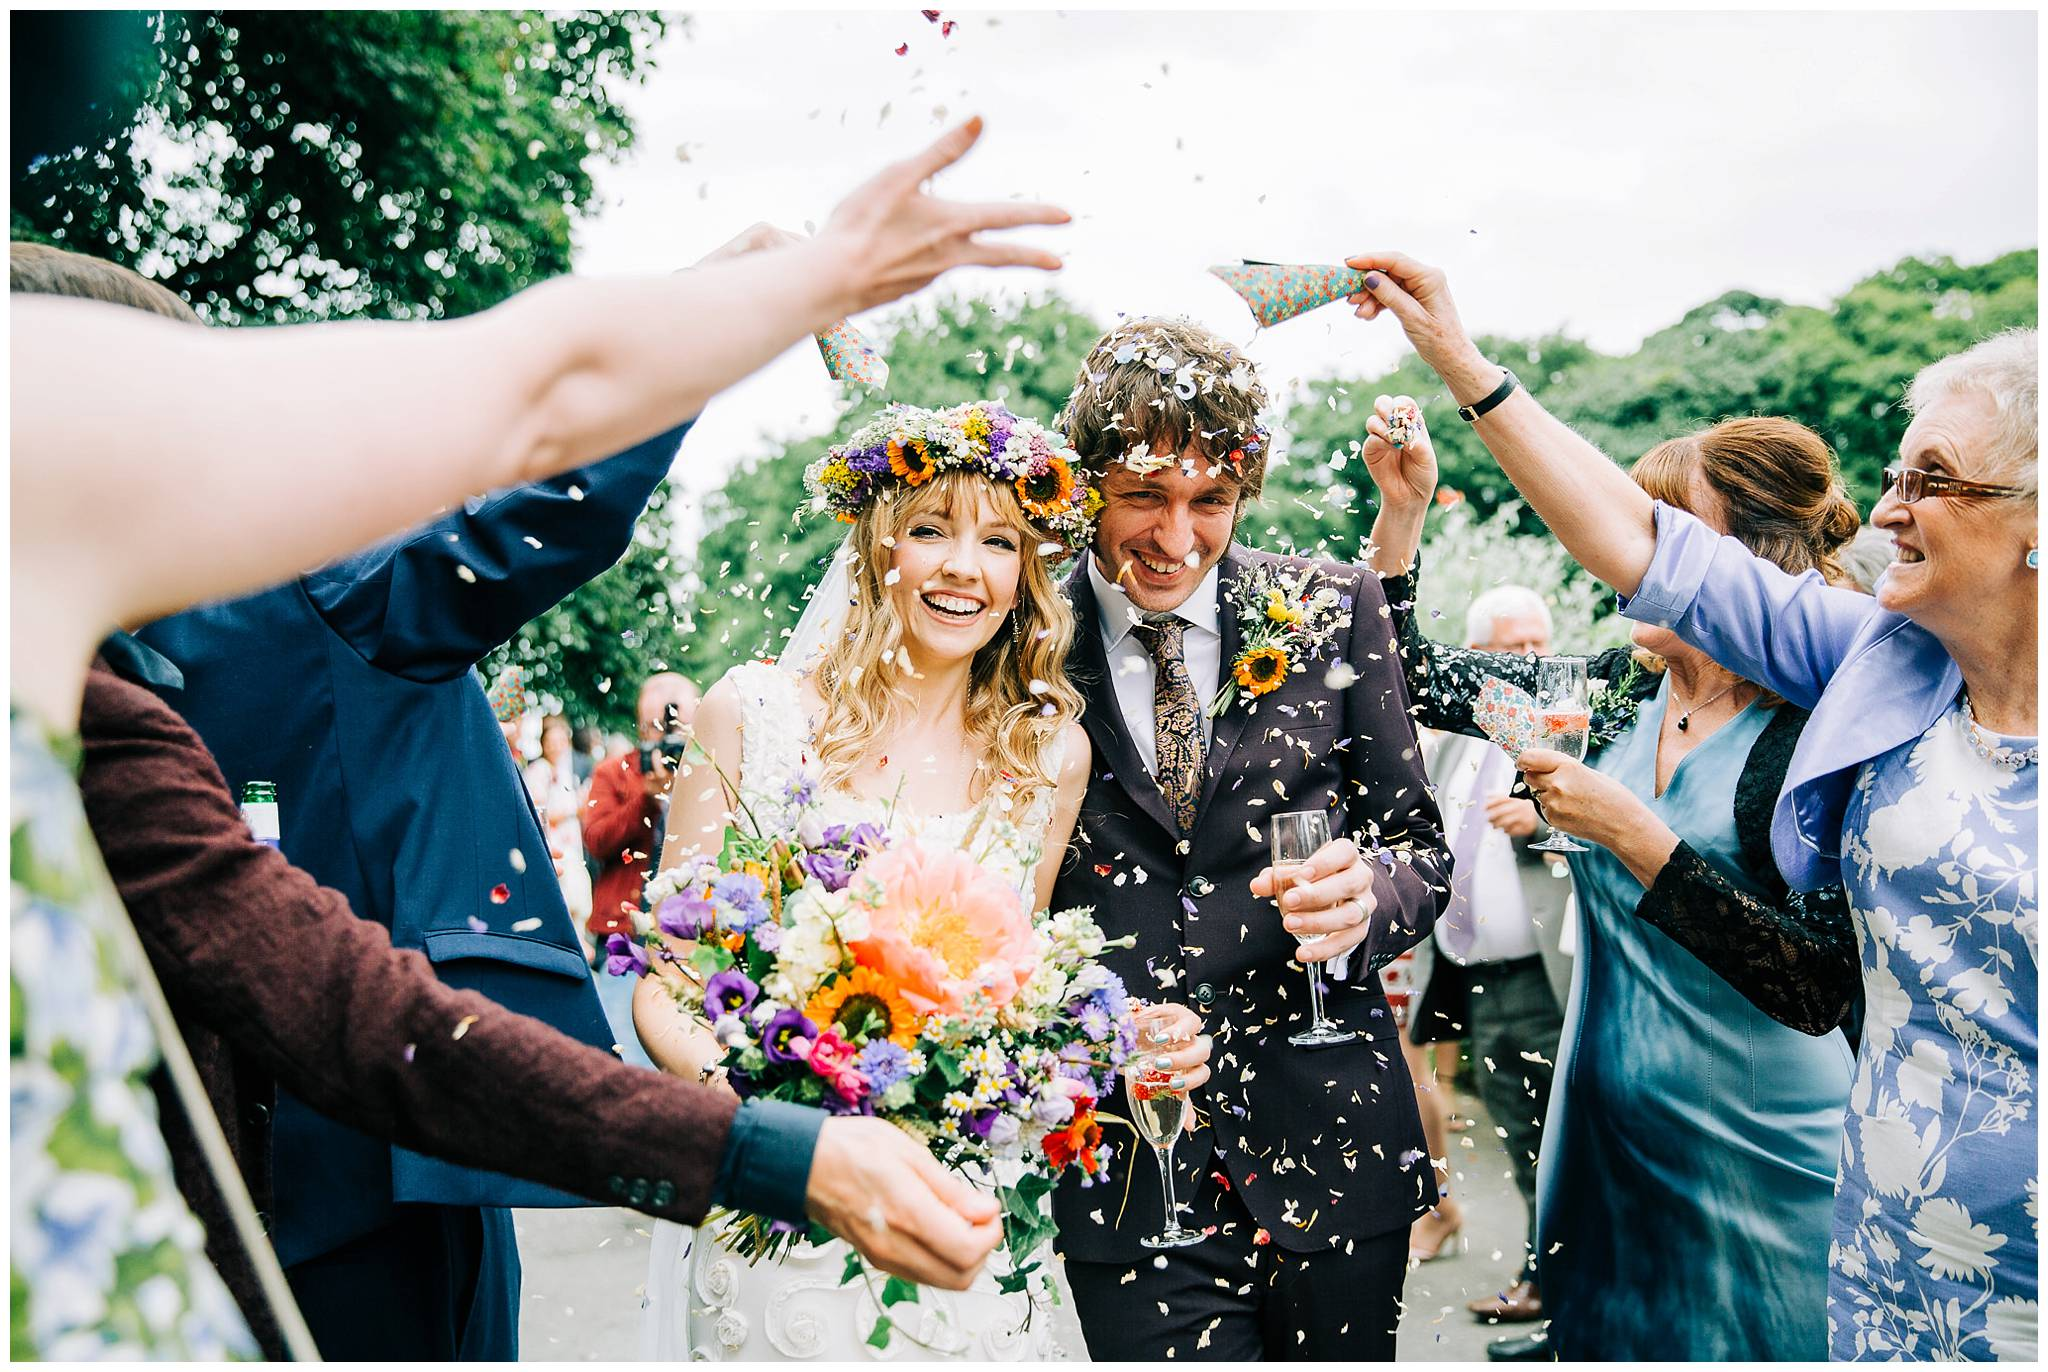 bride wearing floral crown walking with groom being showered in confetti